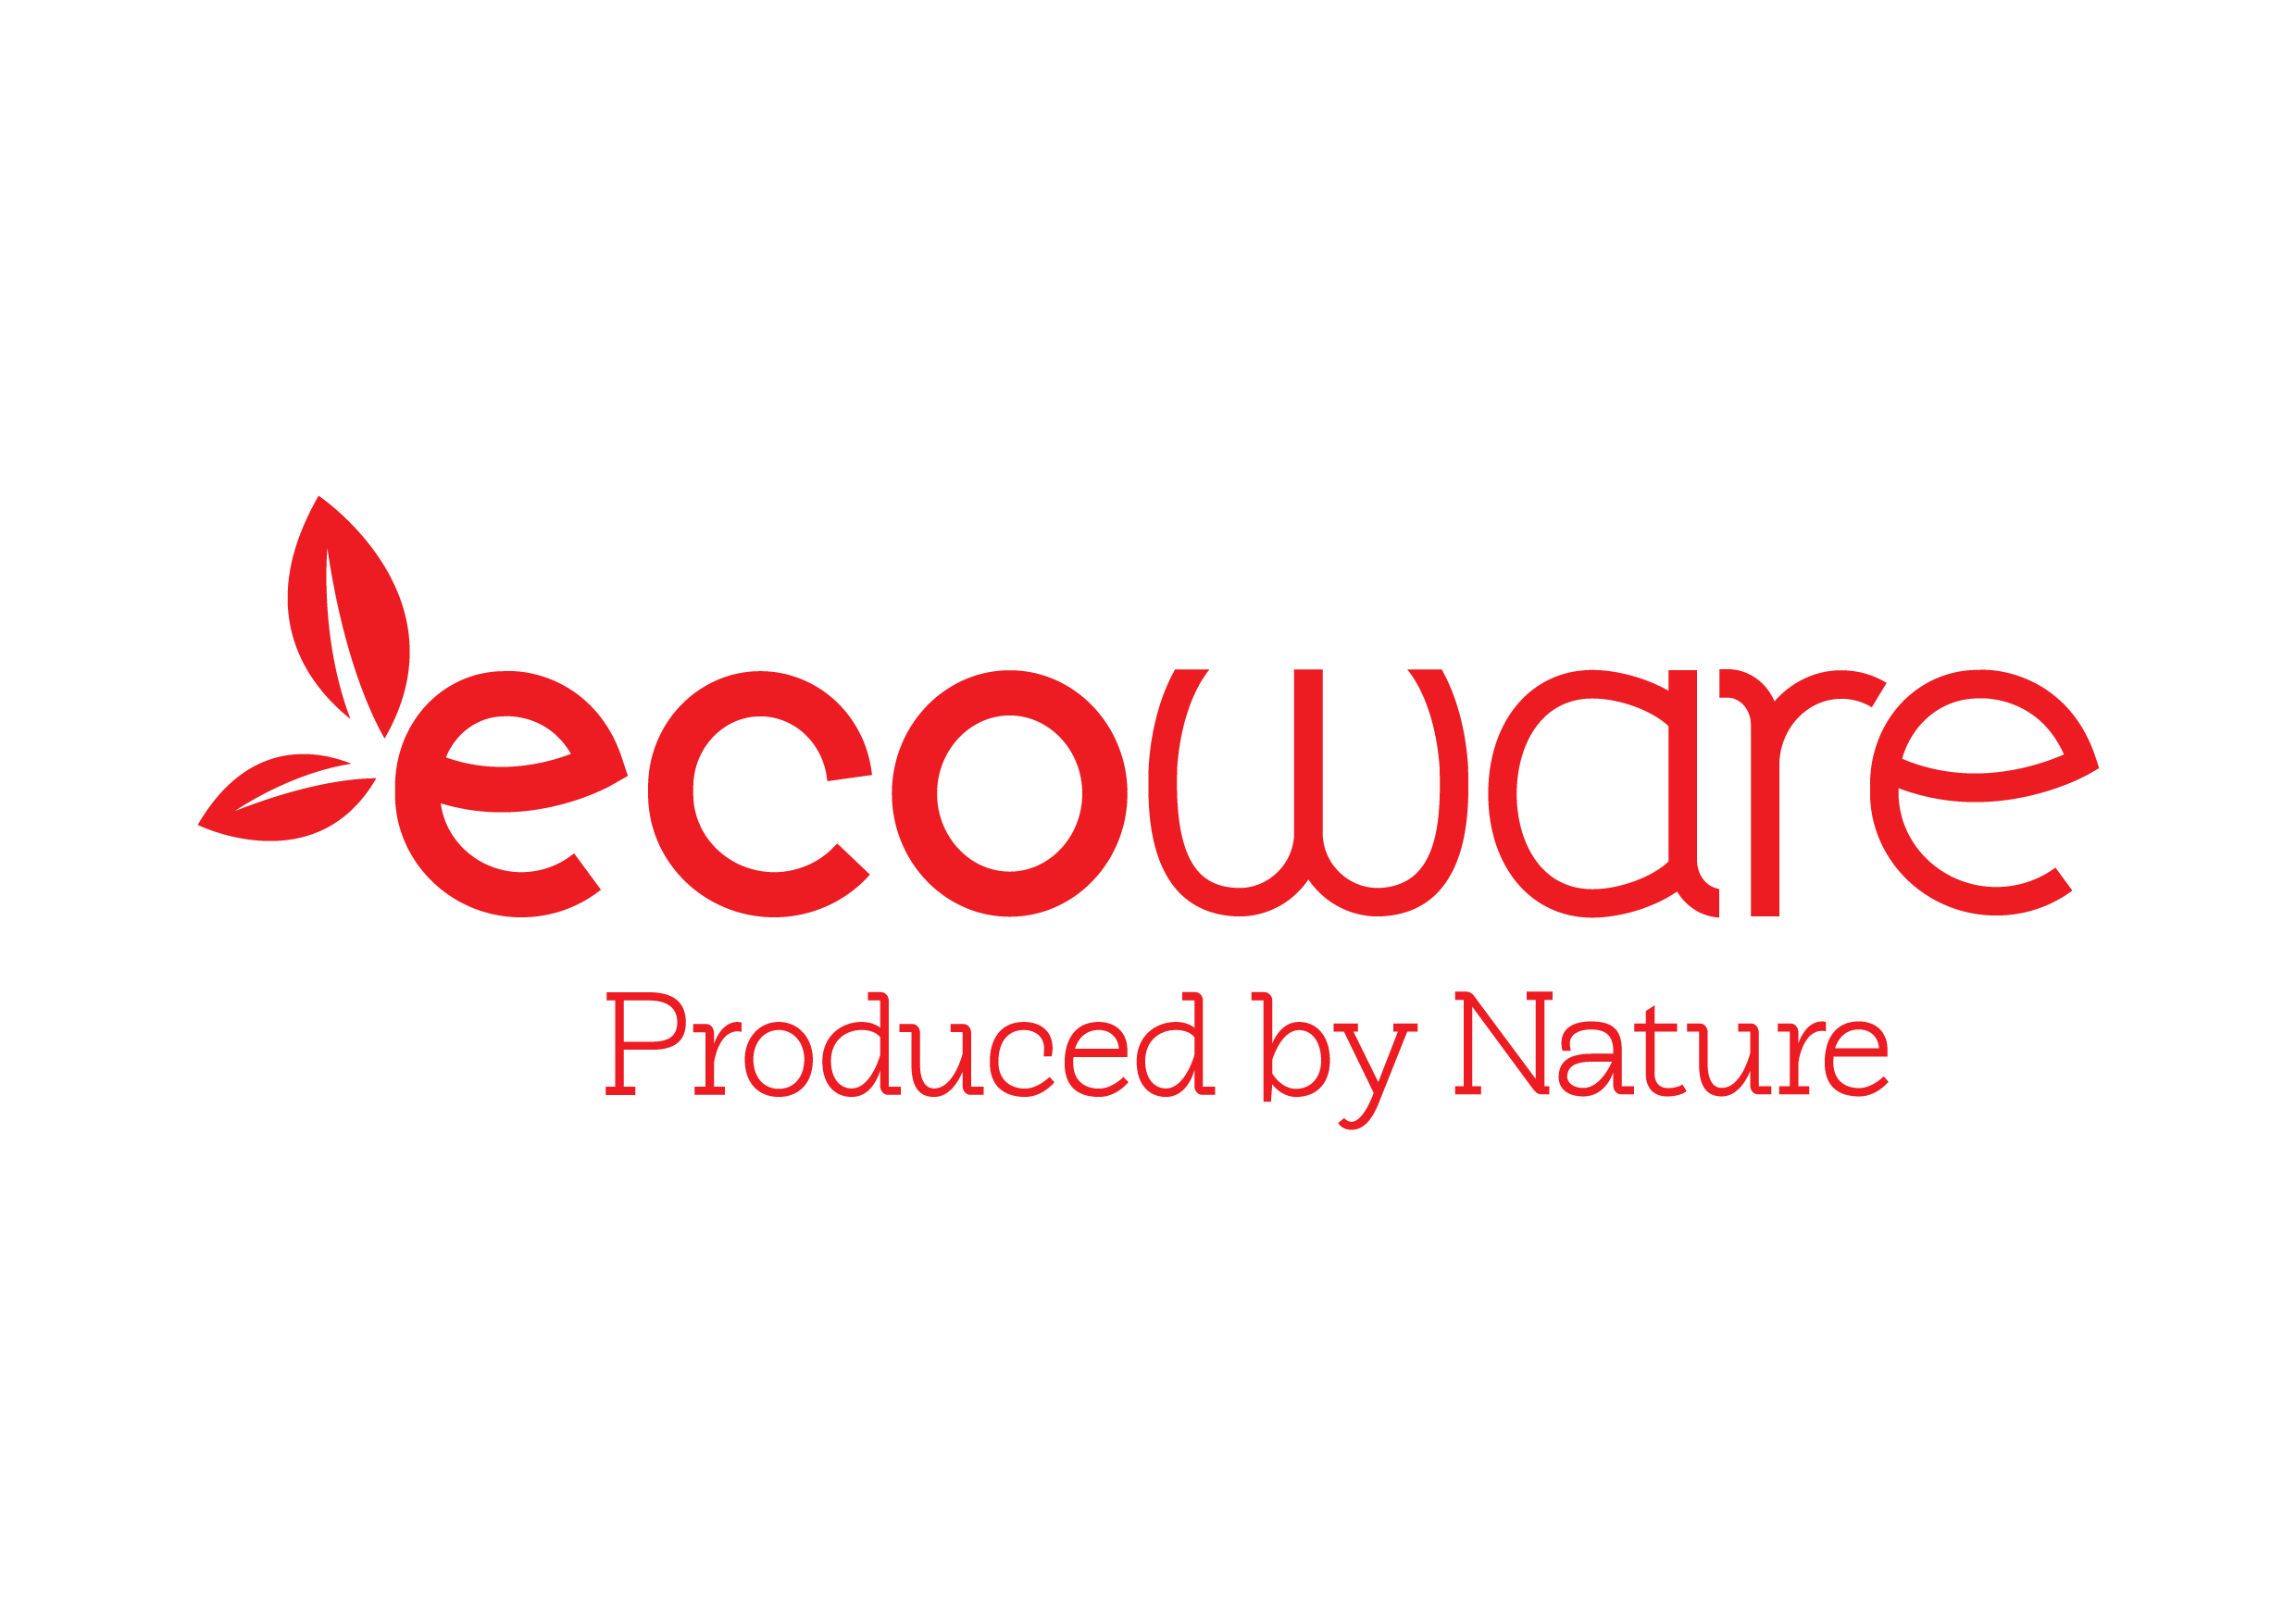 Ecoware-01.png